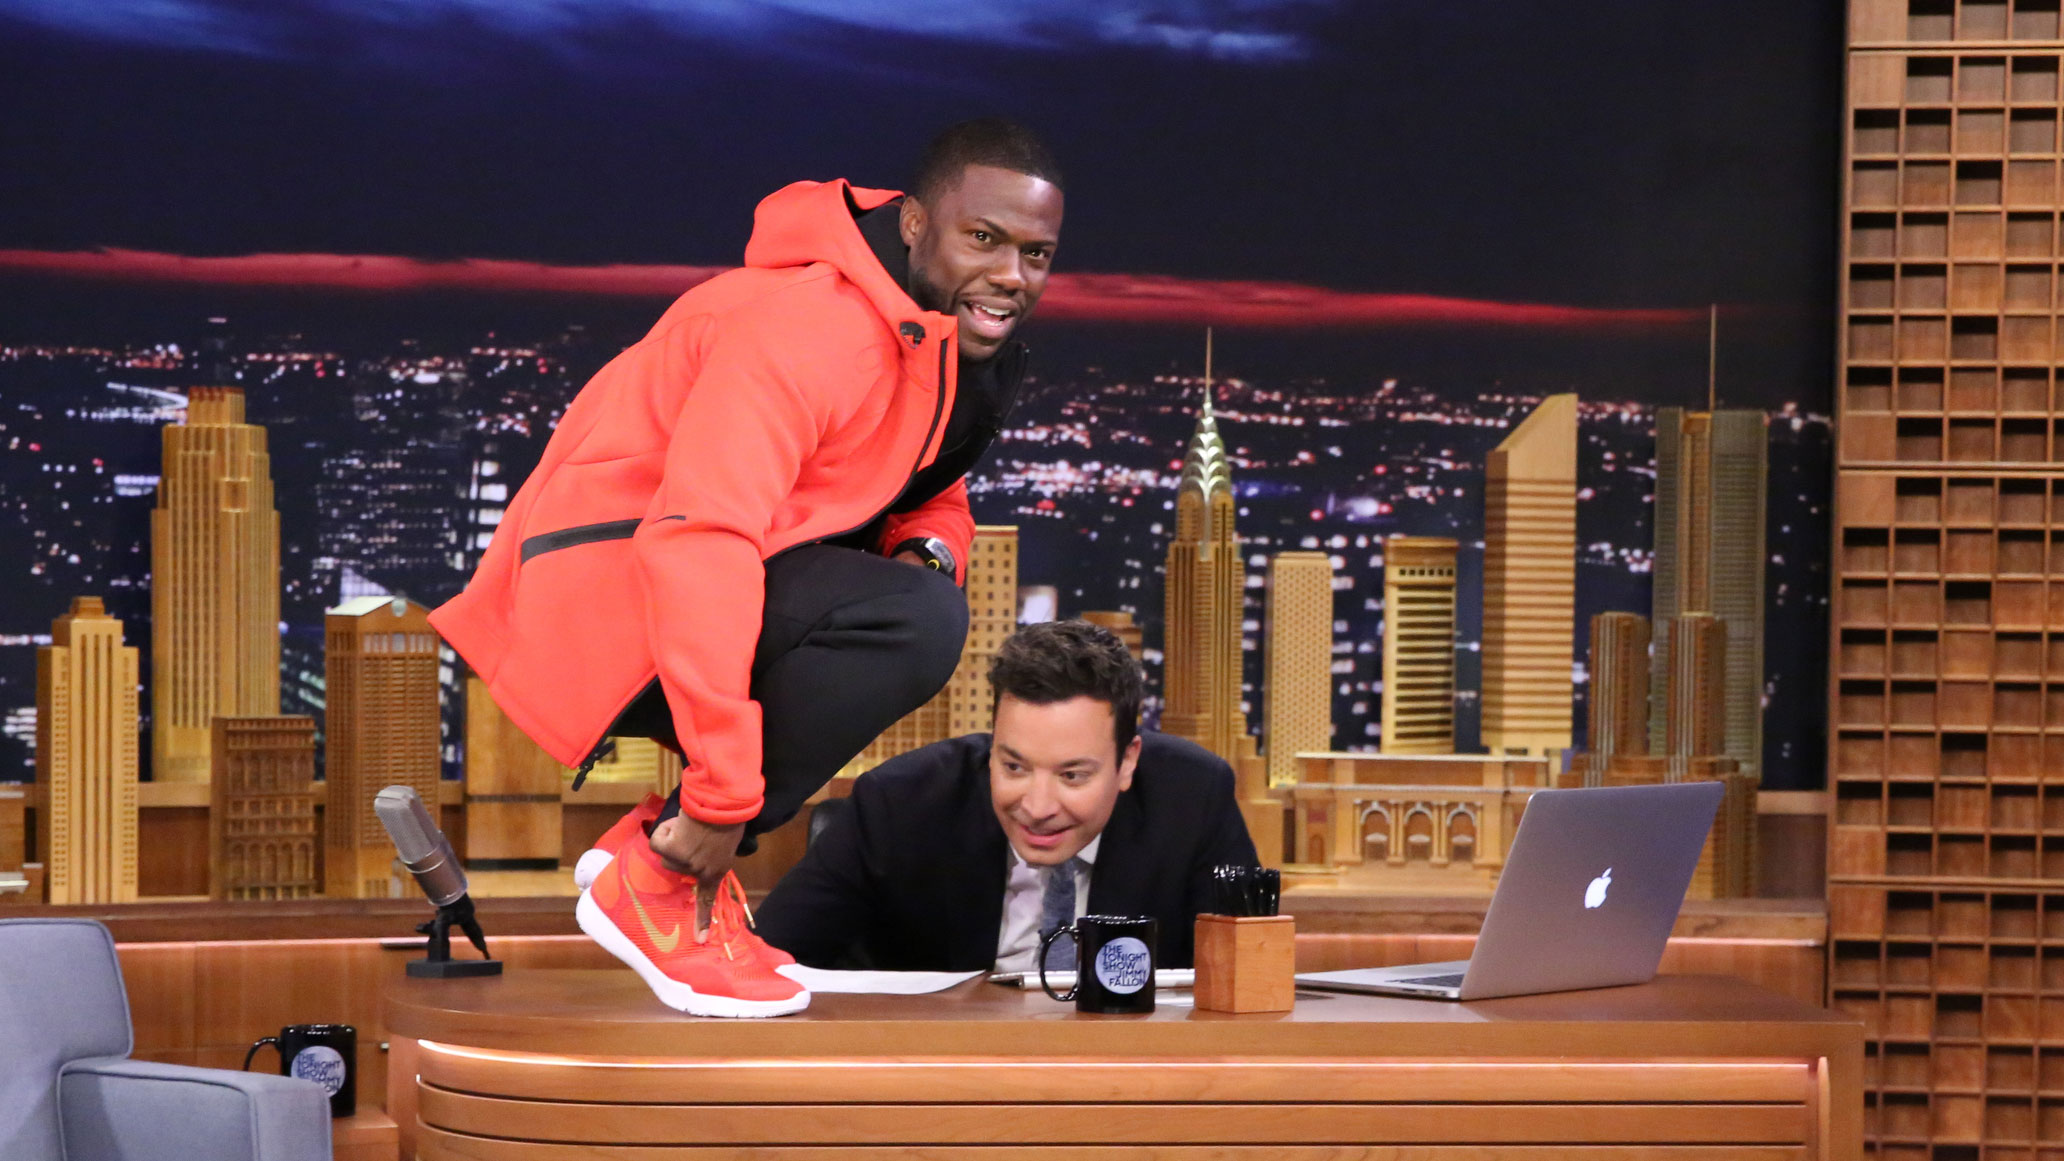 Kevin Hart Announces His Nike Cross Training Shoes The